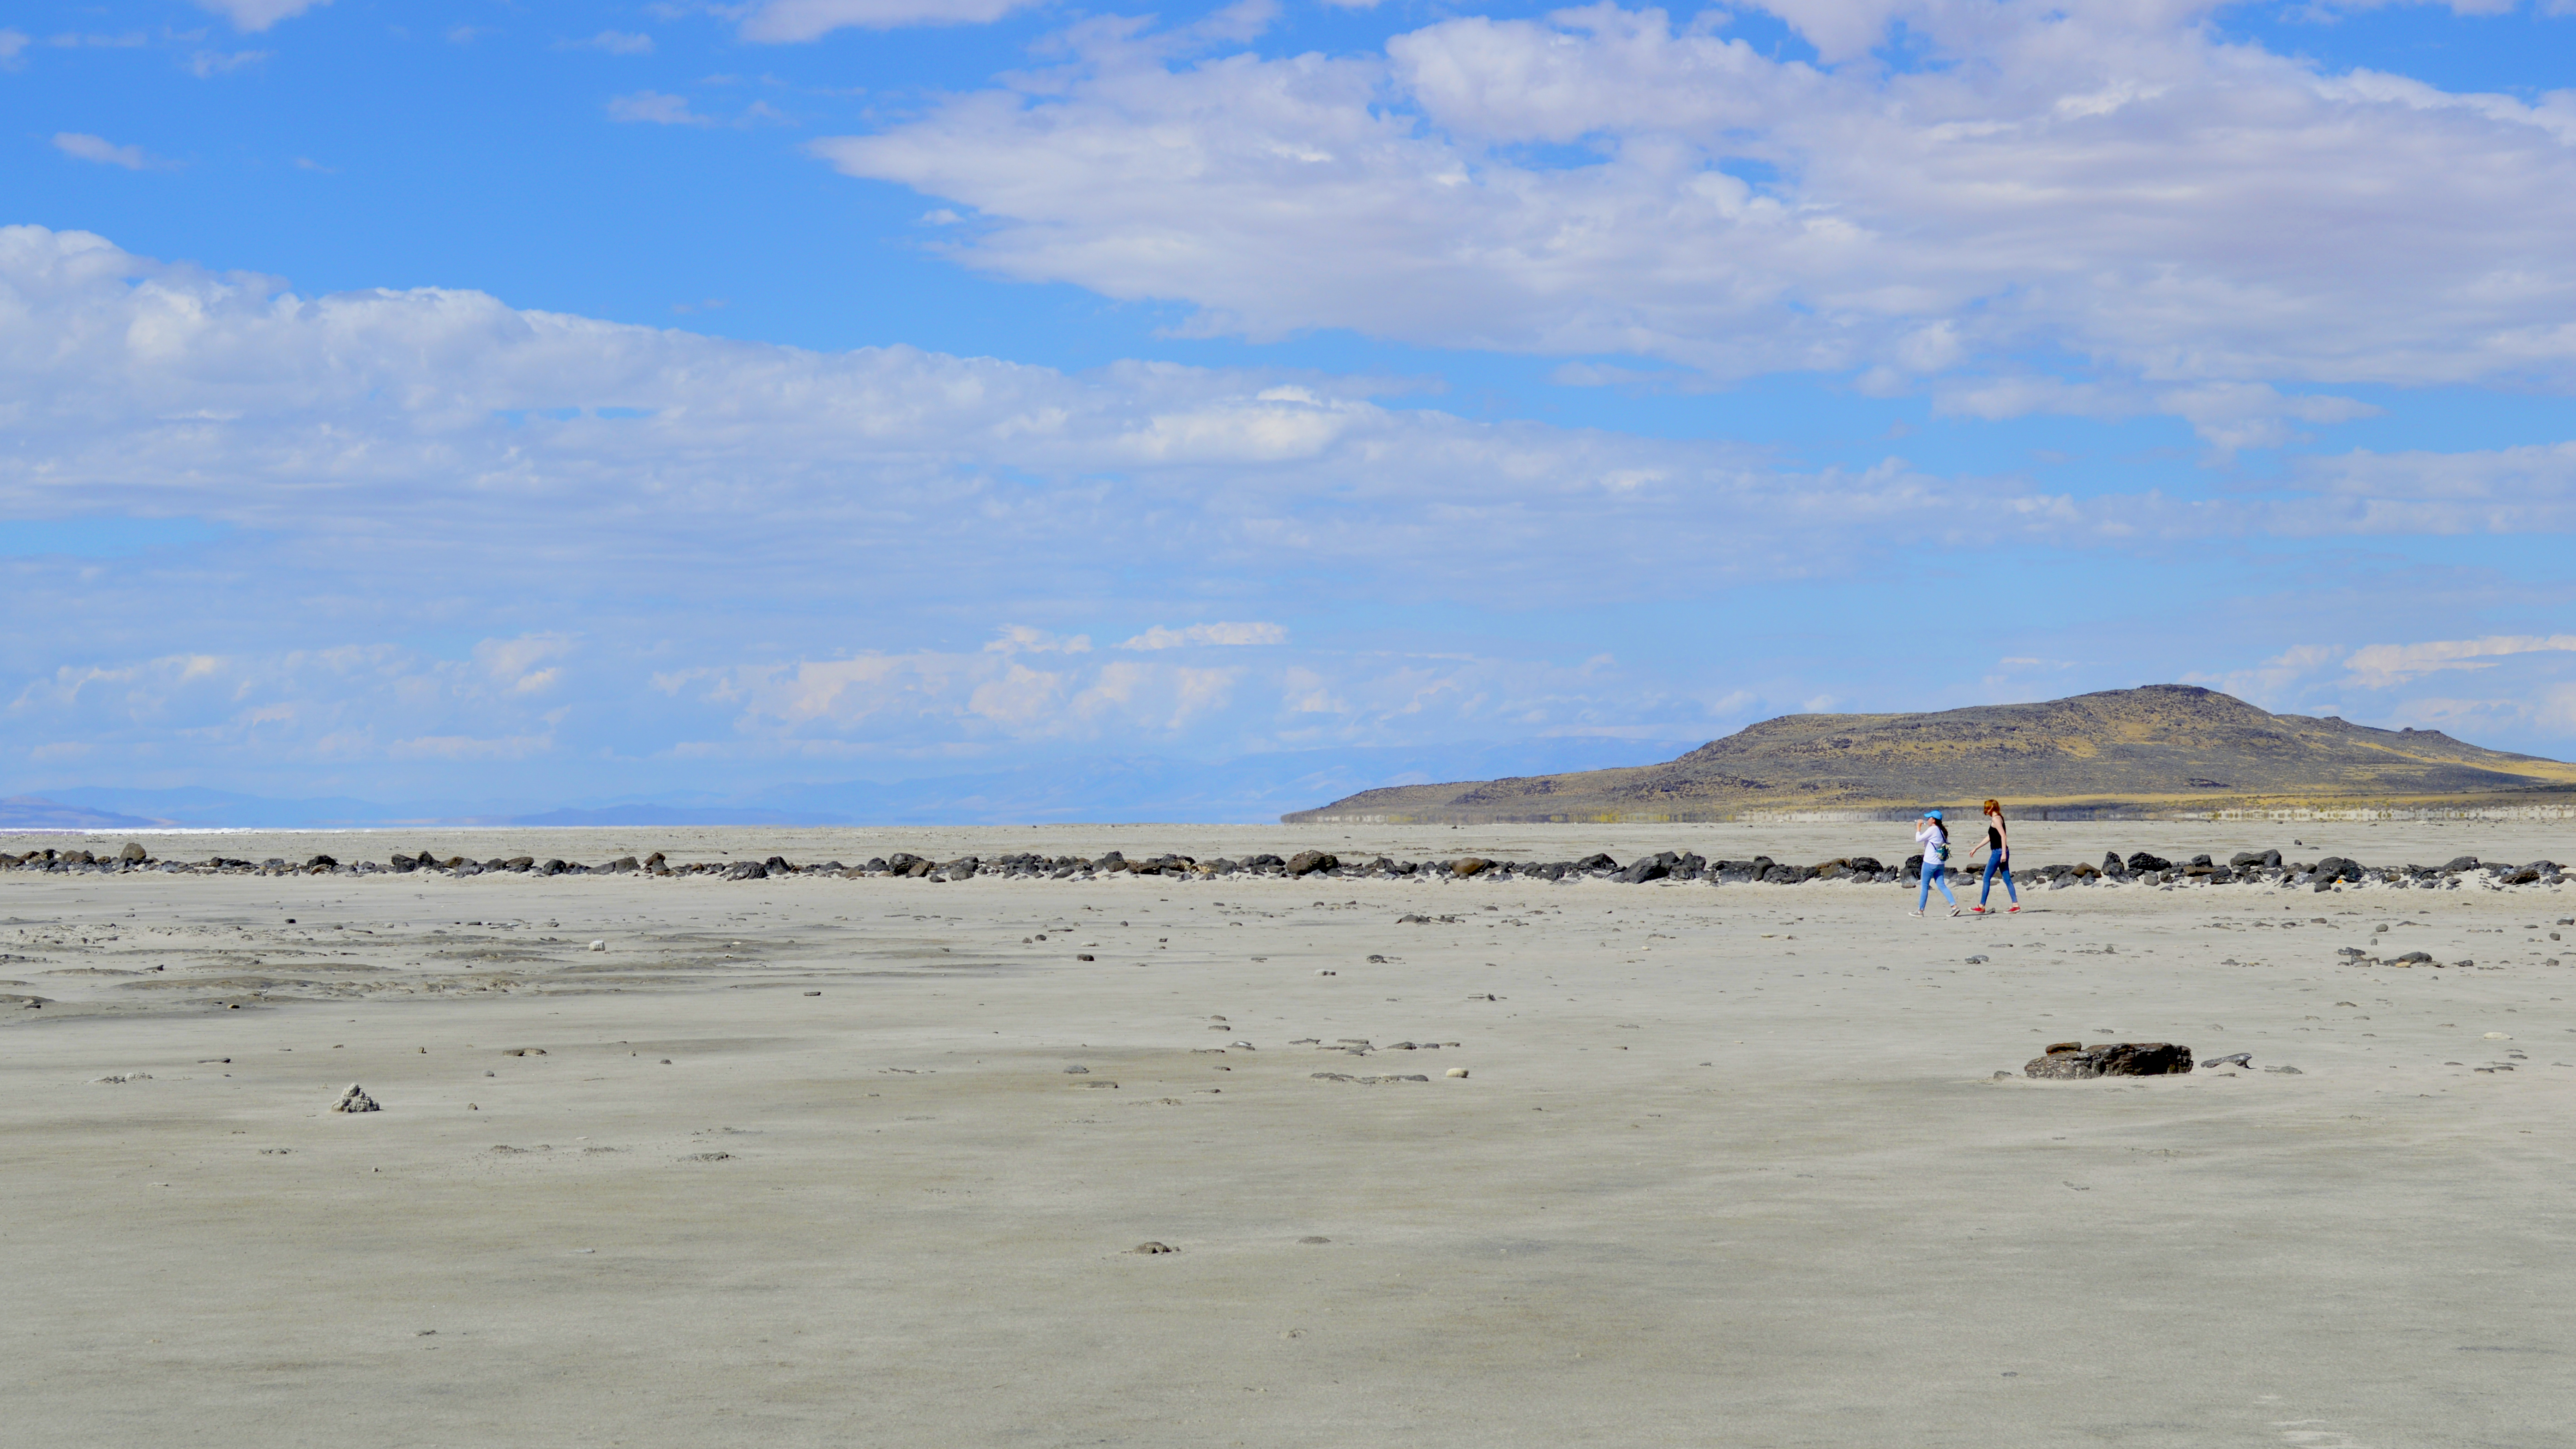 People walking the Spiral Jetty